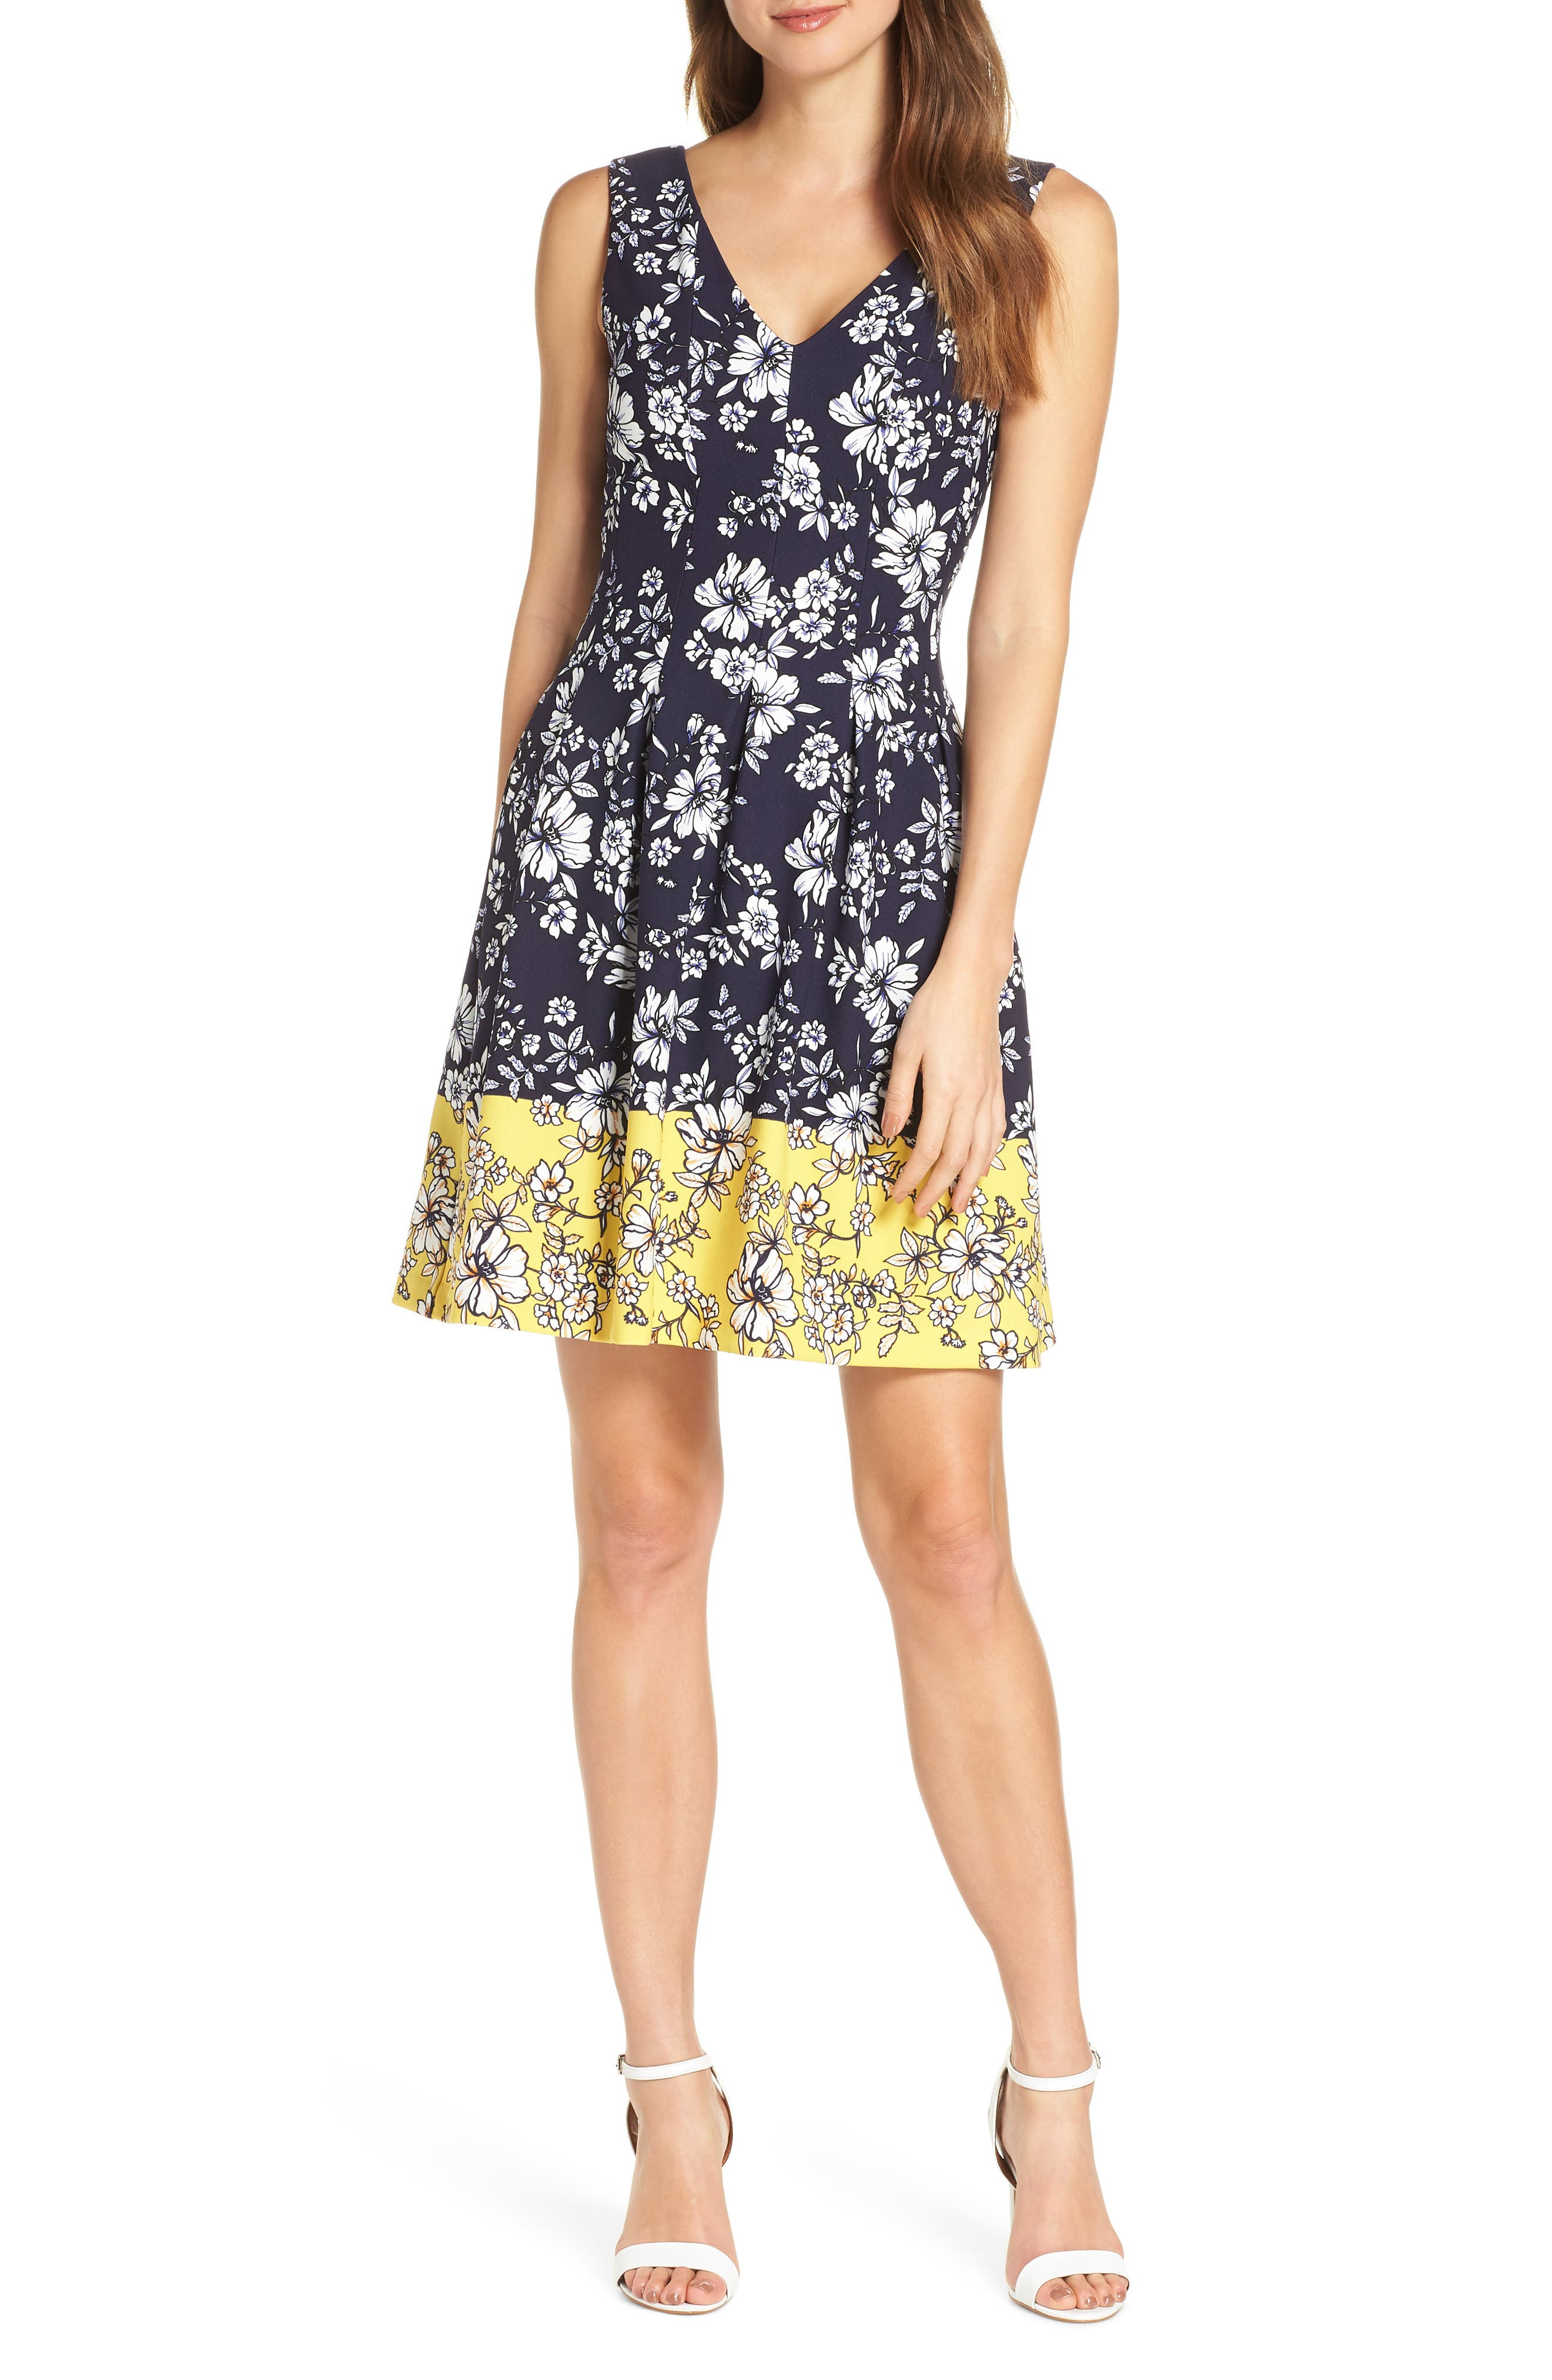 VINCE CAMUTO, Floral Print Pleated Fit & Flare Dress, Main thumbnail 1, color, NAVY/ YELLOW